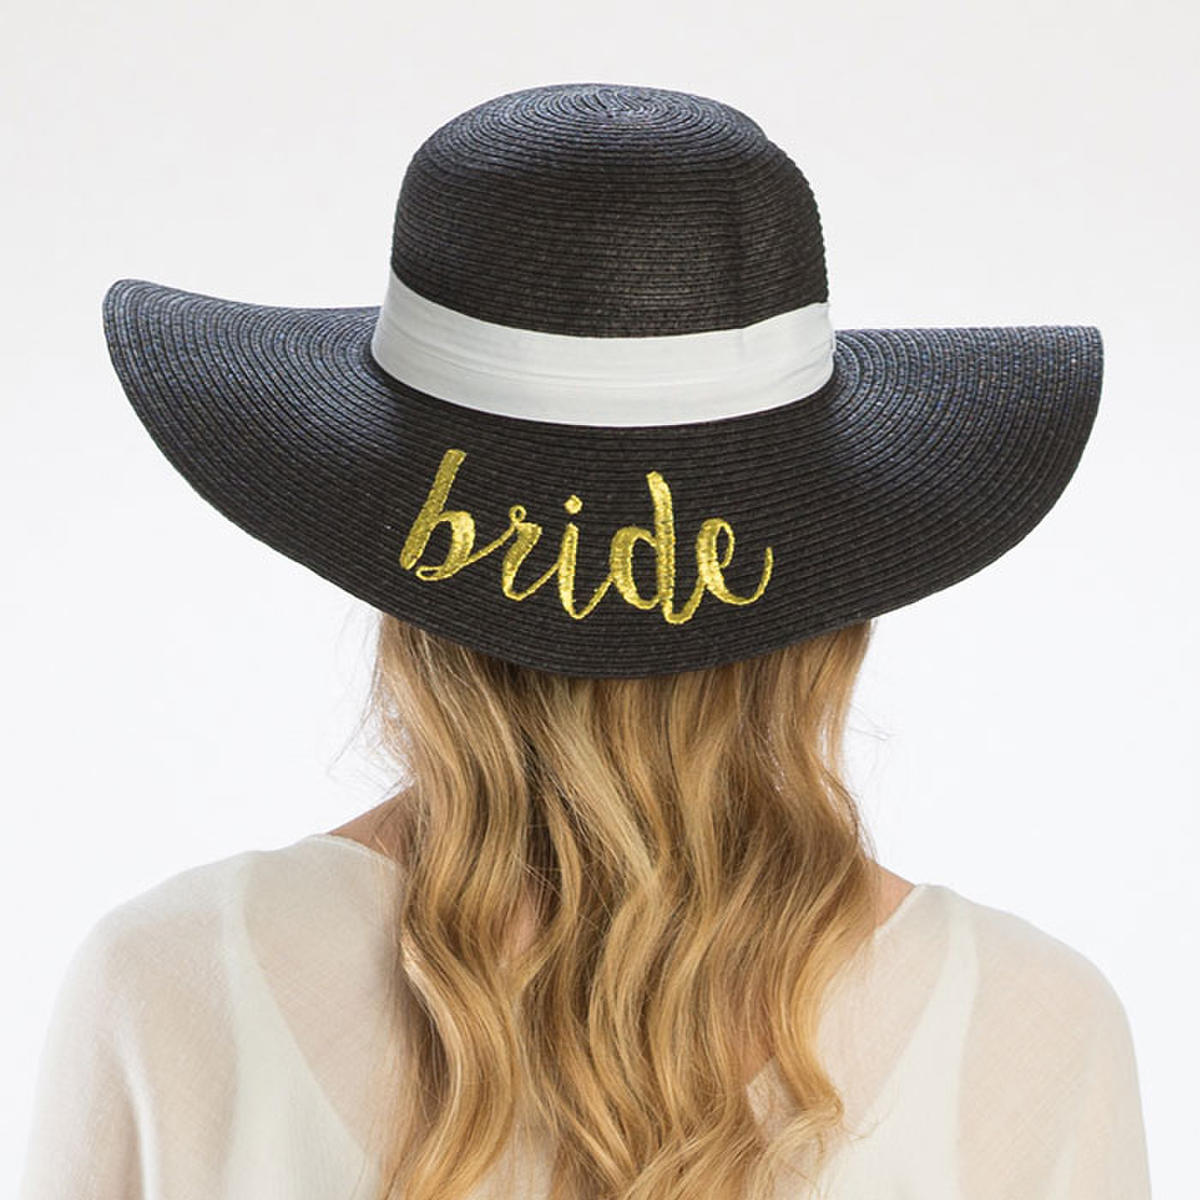 WONA TRADING INC - Bride' Embroidery Straw Floppy Sun Hat